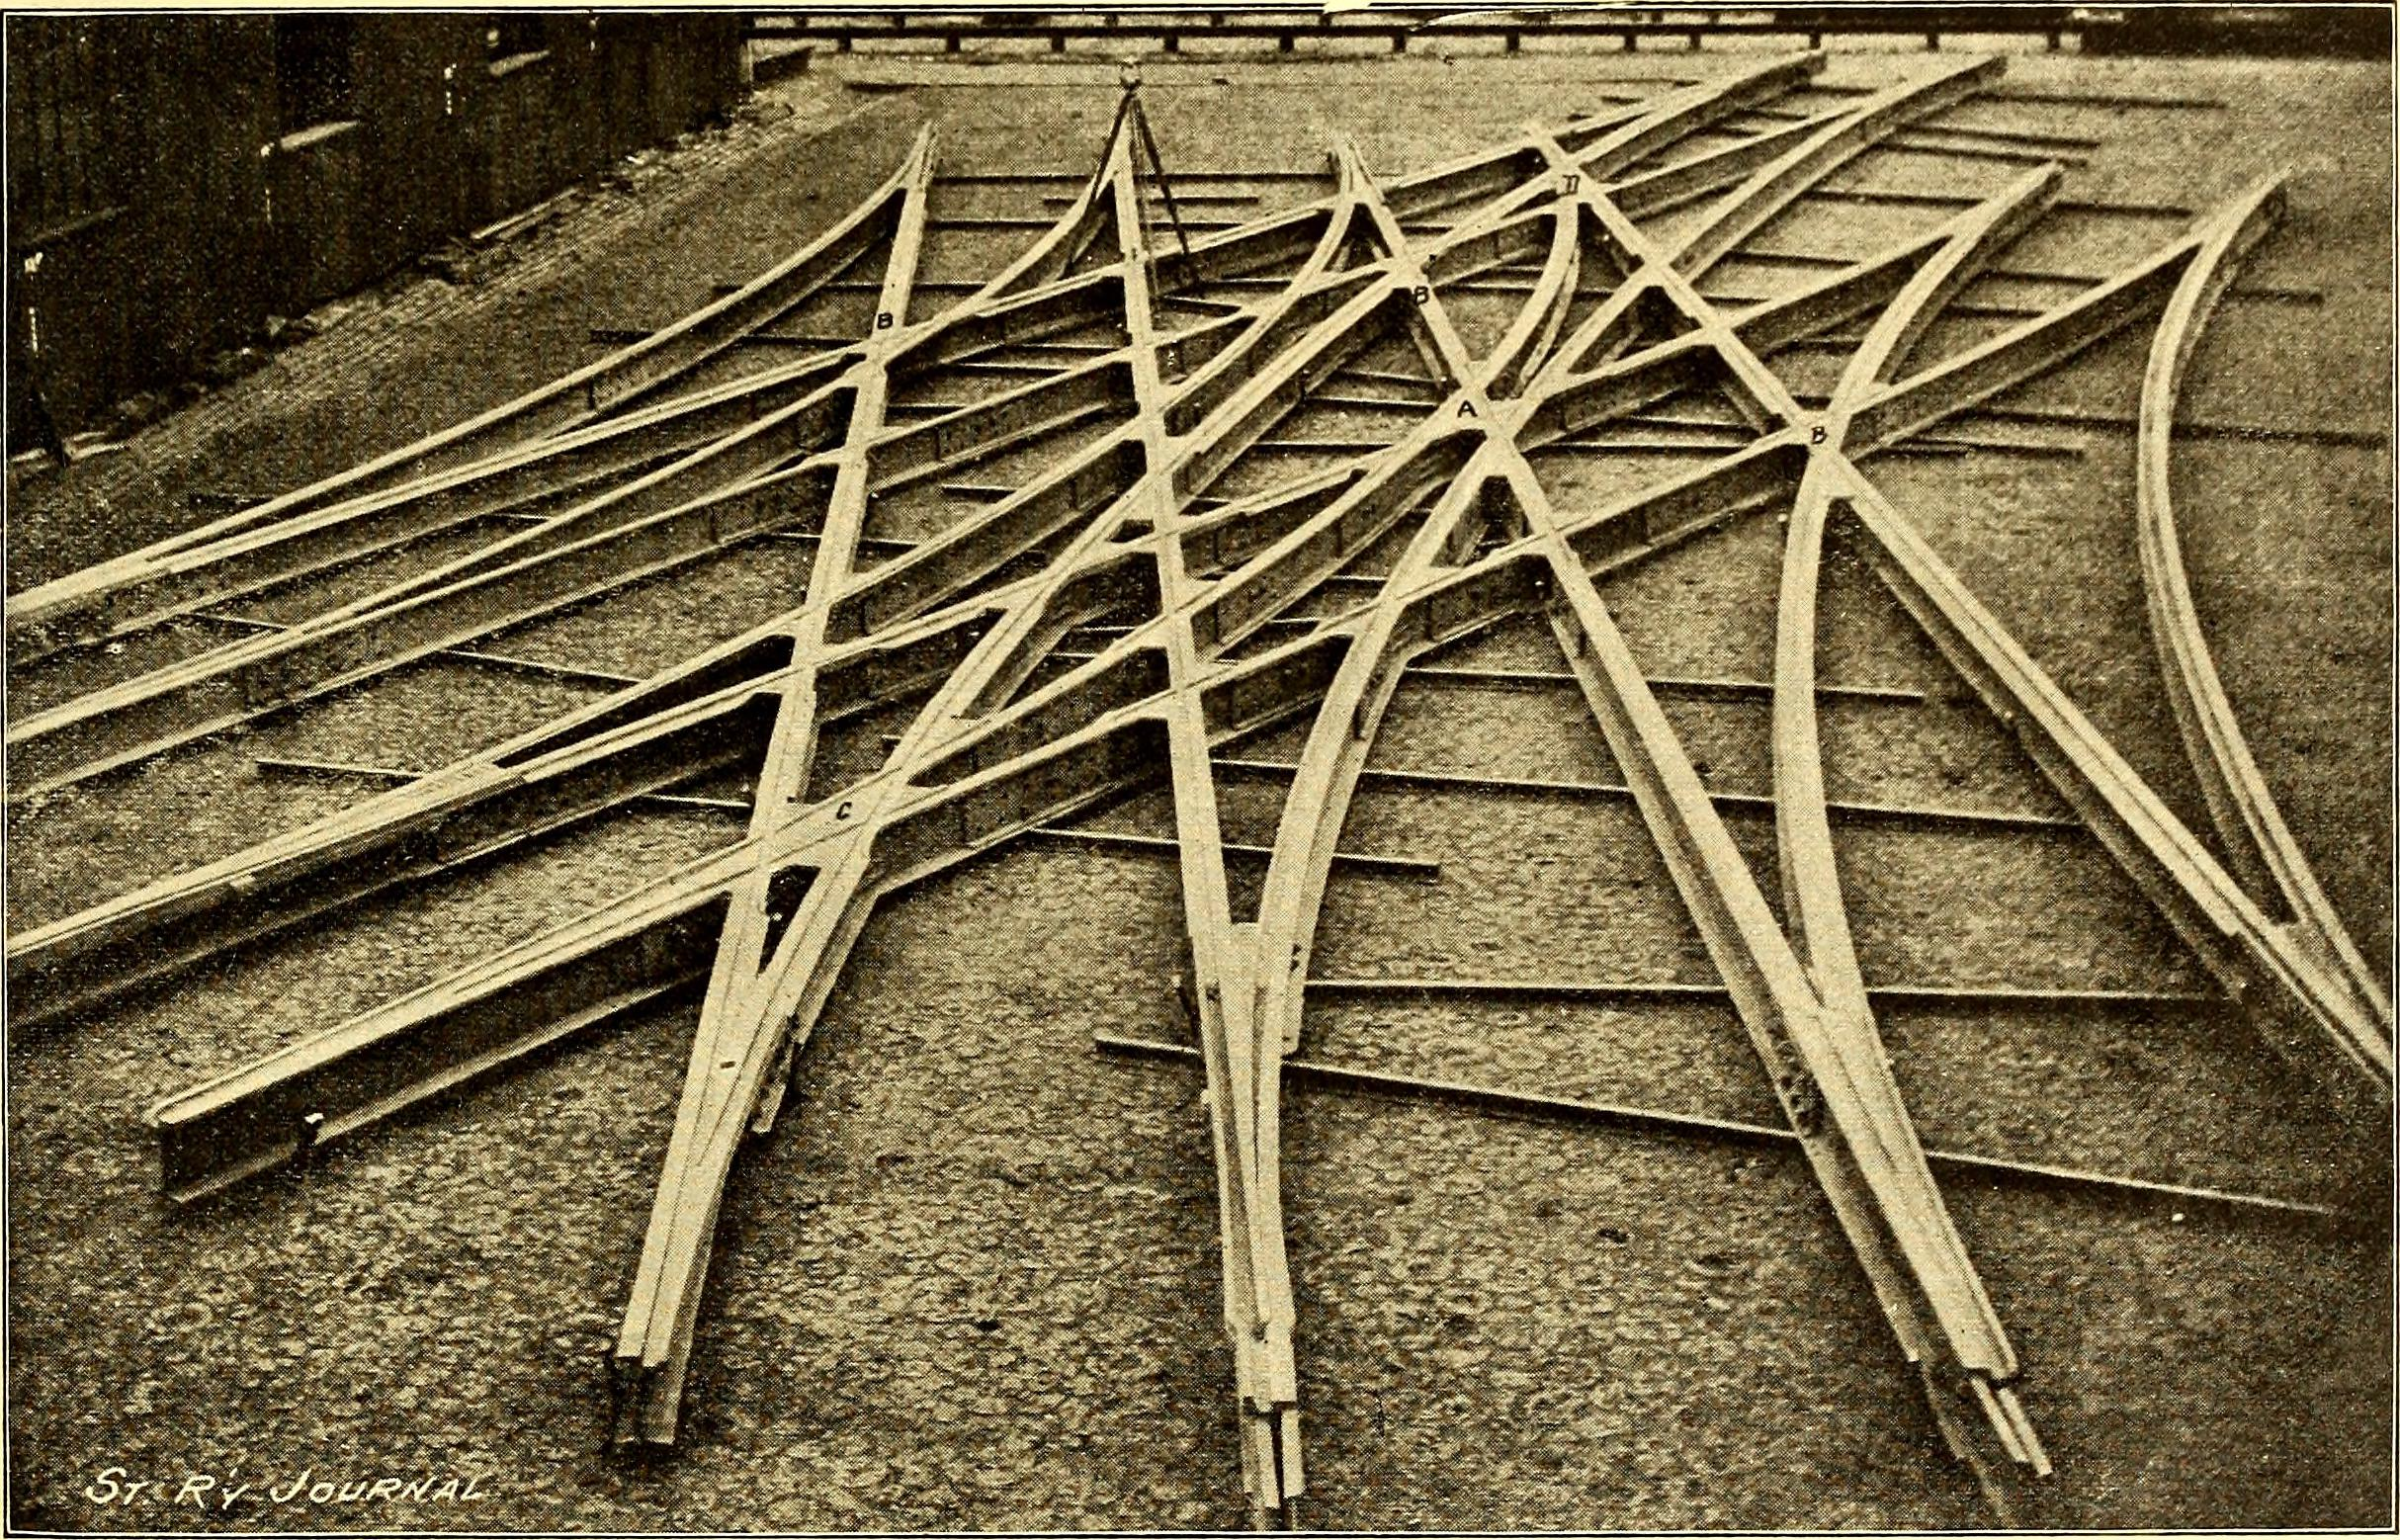 The Street Railway Journal (1884)   The Construction Period